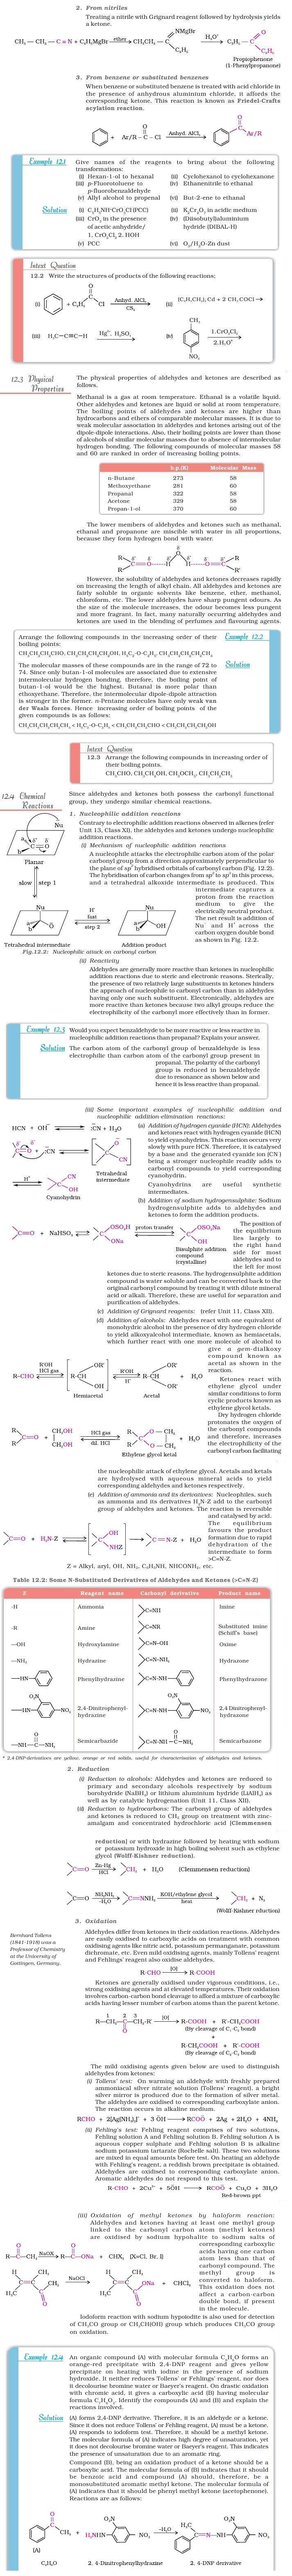 NCERT Class XII Chemistry Chapter 12 - Aldehydes, Ketones and Carboxylic Acids